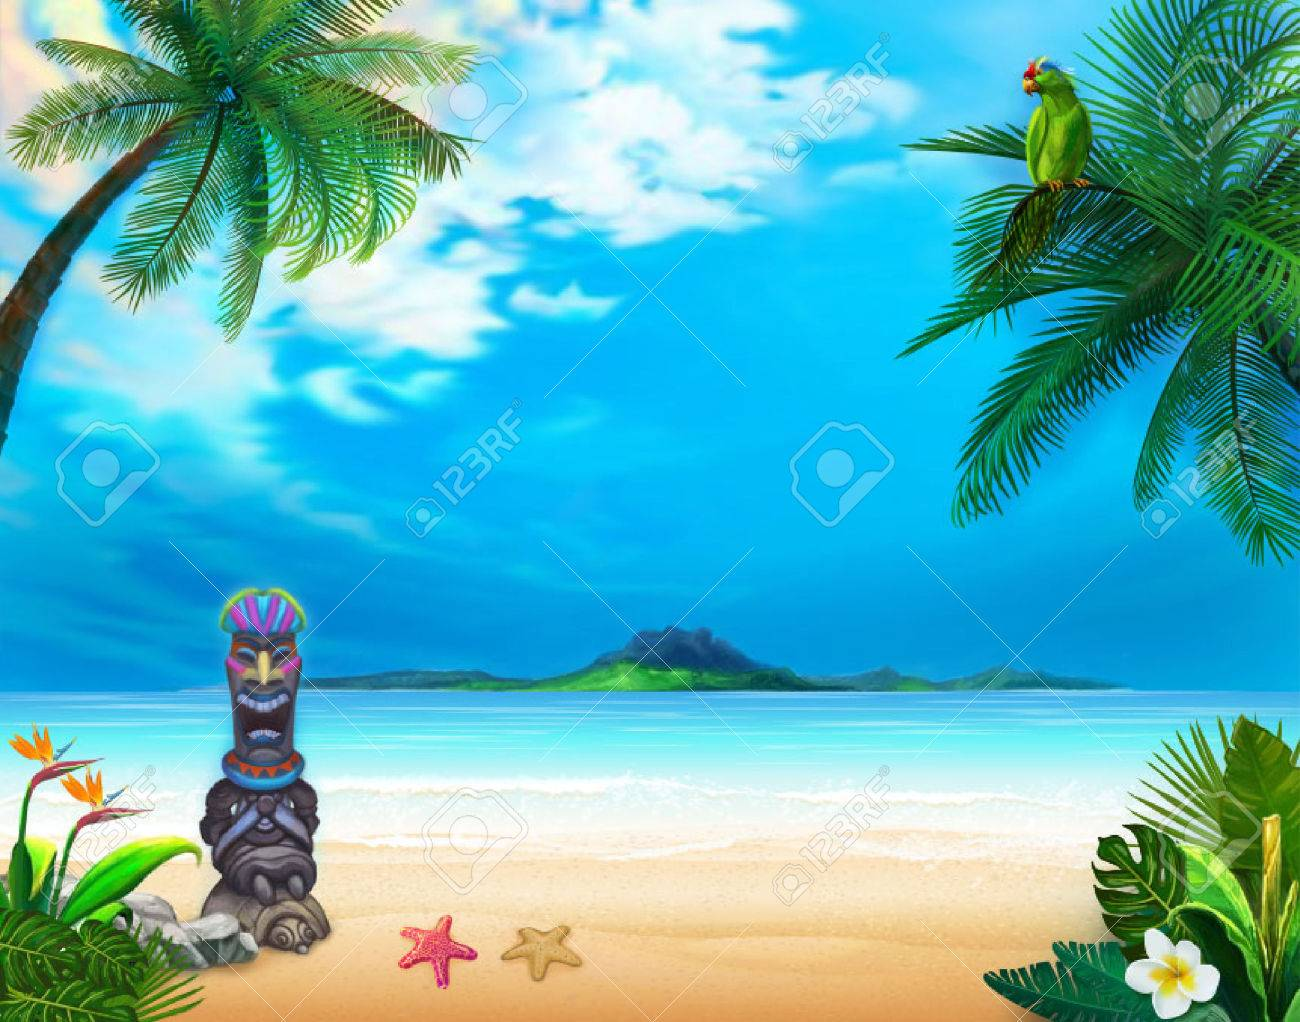 Hawaiian Landscape With Funny God And Green Parrot The Picture